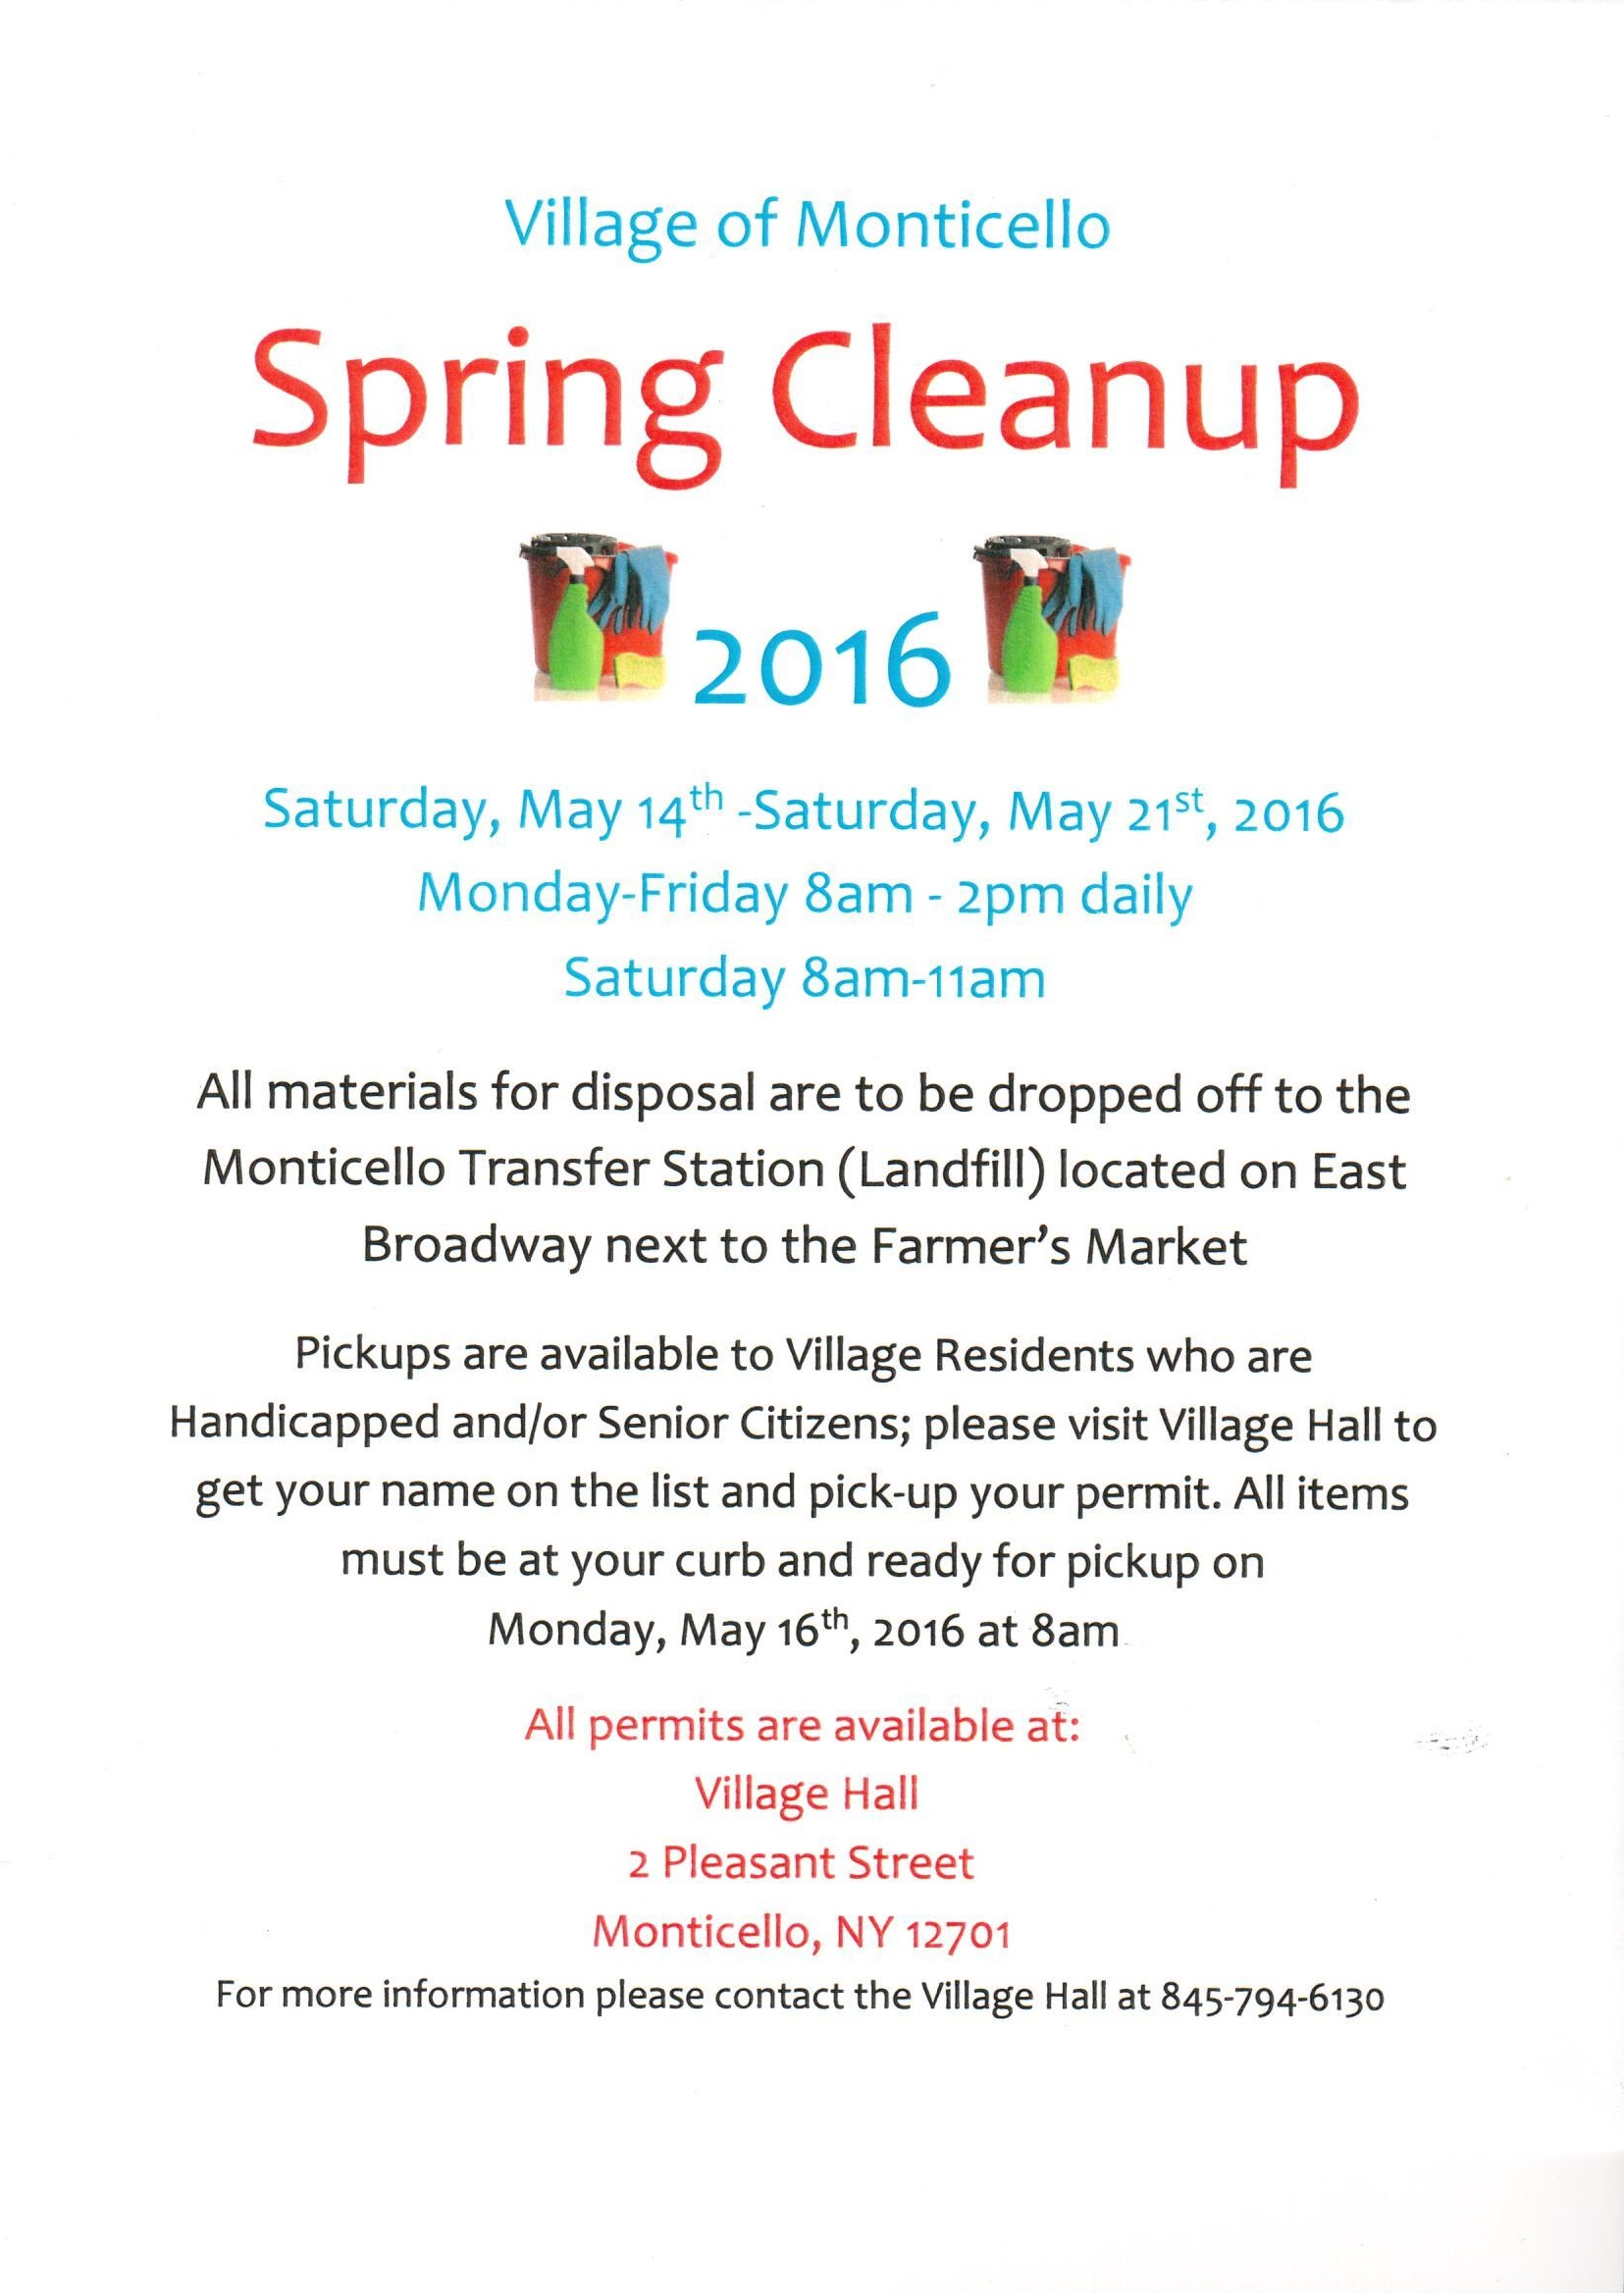 Flyer announcing spring clean-up for Village residents, May 14, 2016